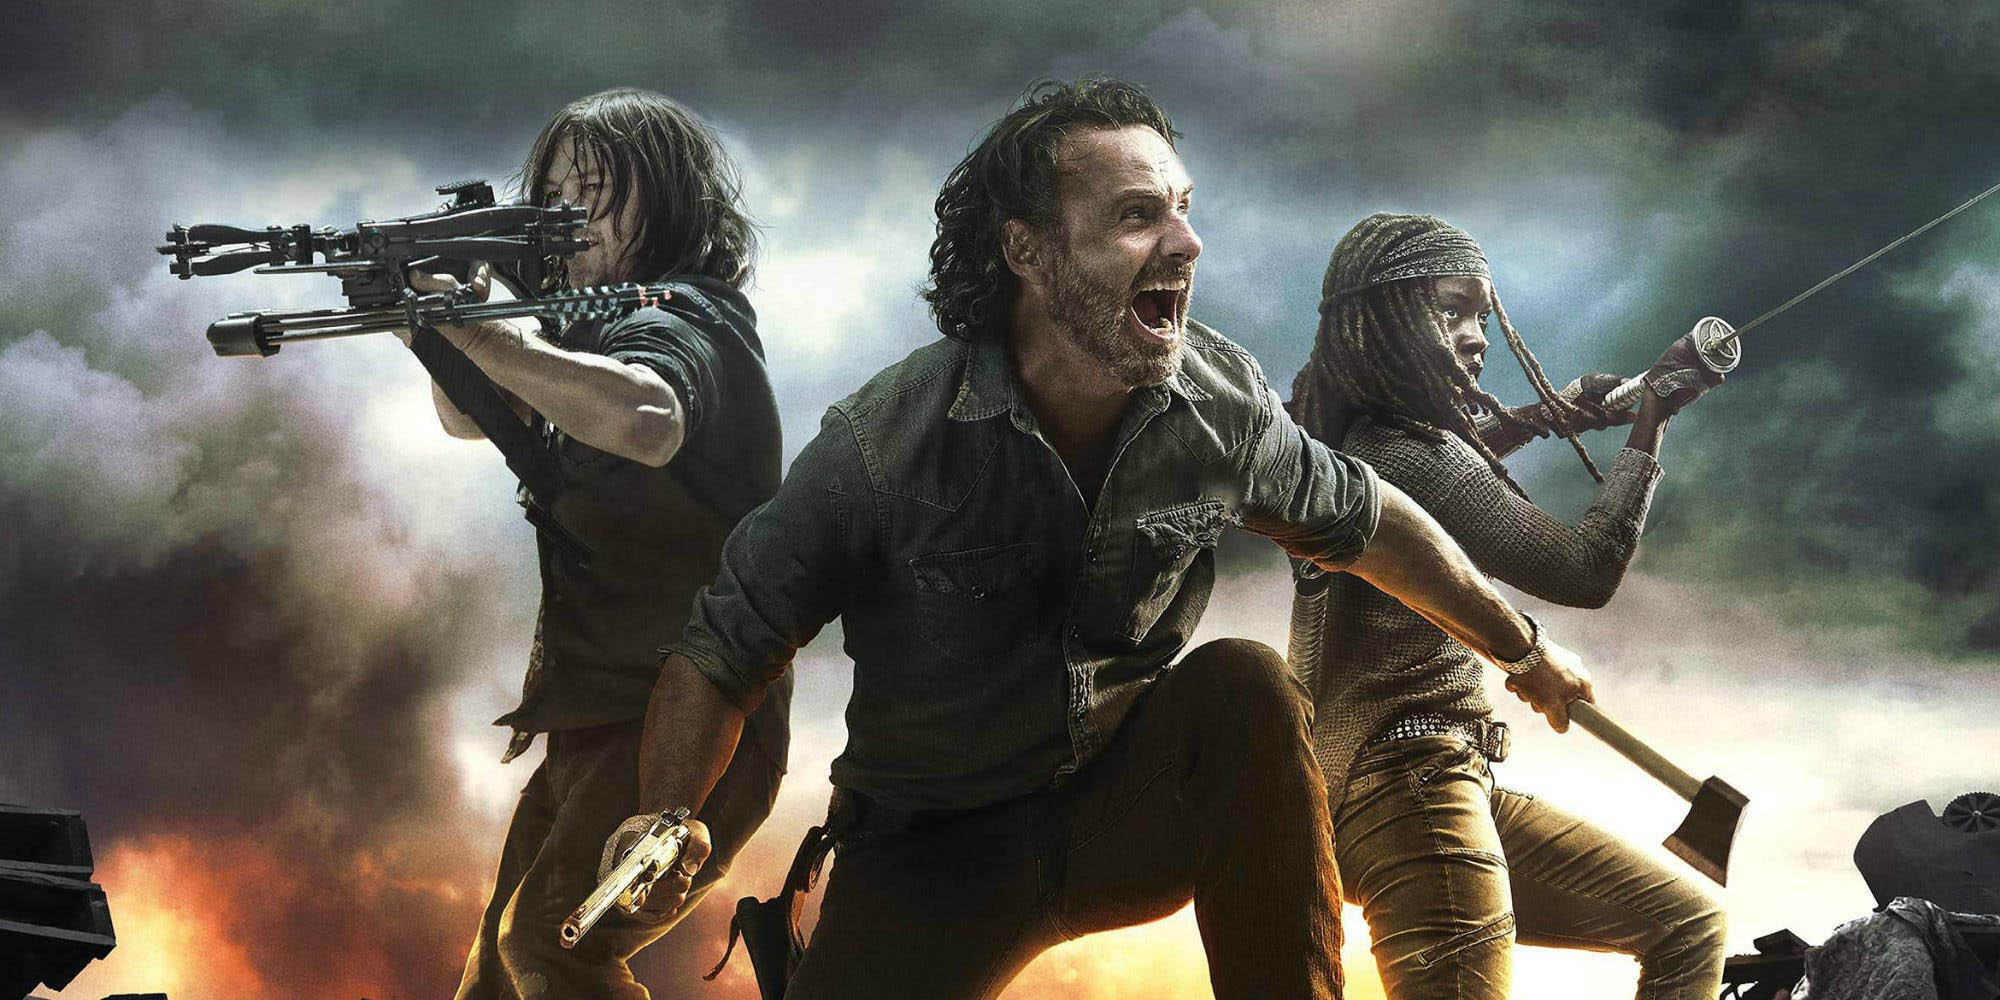 S9 of 'The Walking Dead' shuffled off our screens like a rotting corpse. We have a revolutionary idea to share with you: it's time to stop watching.